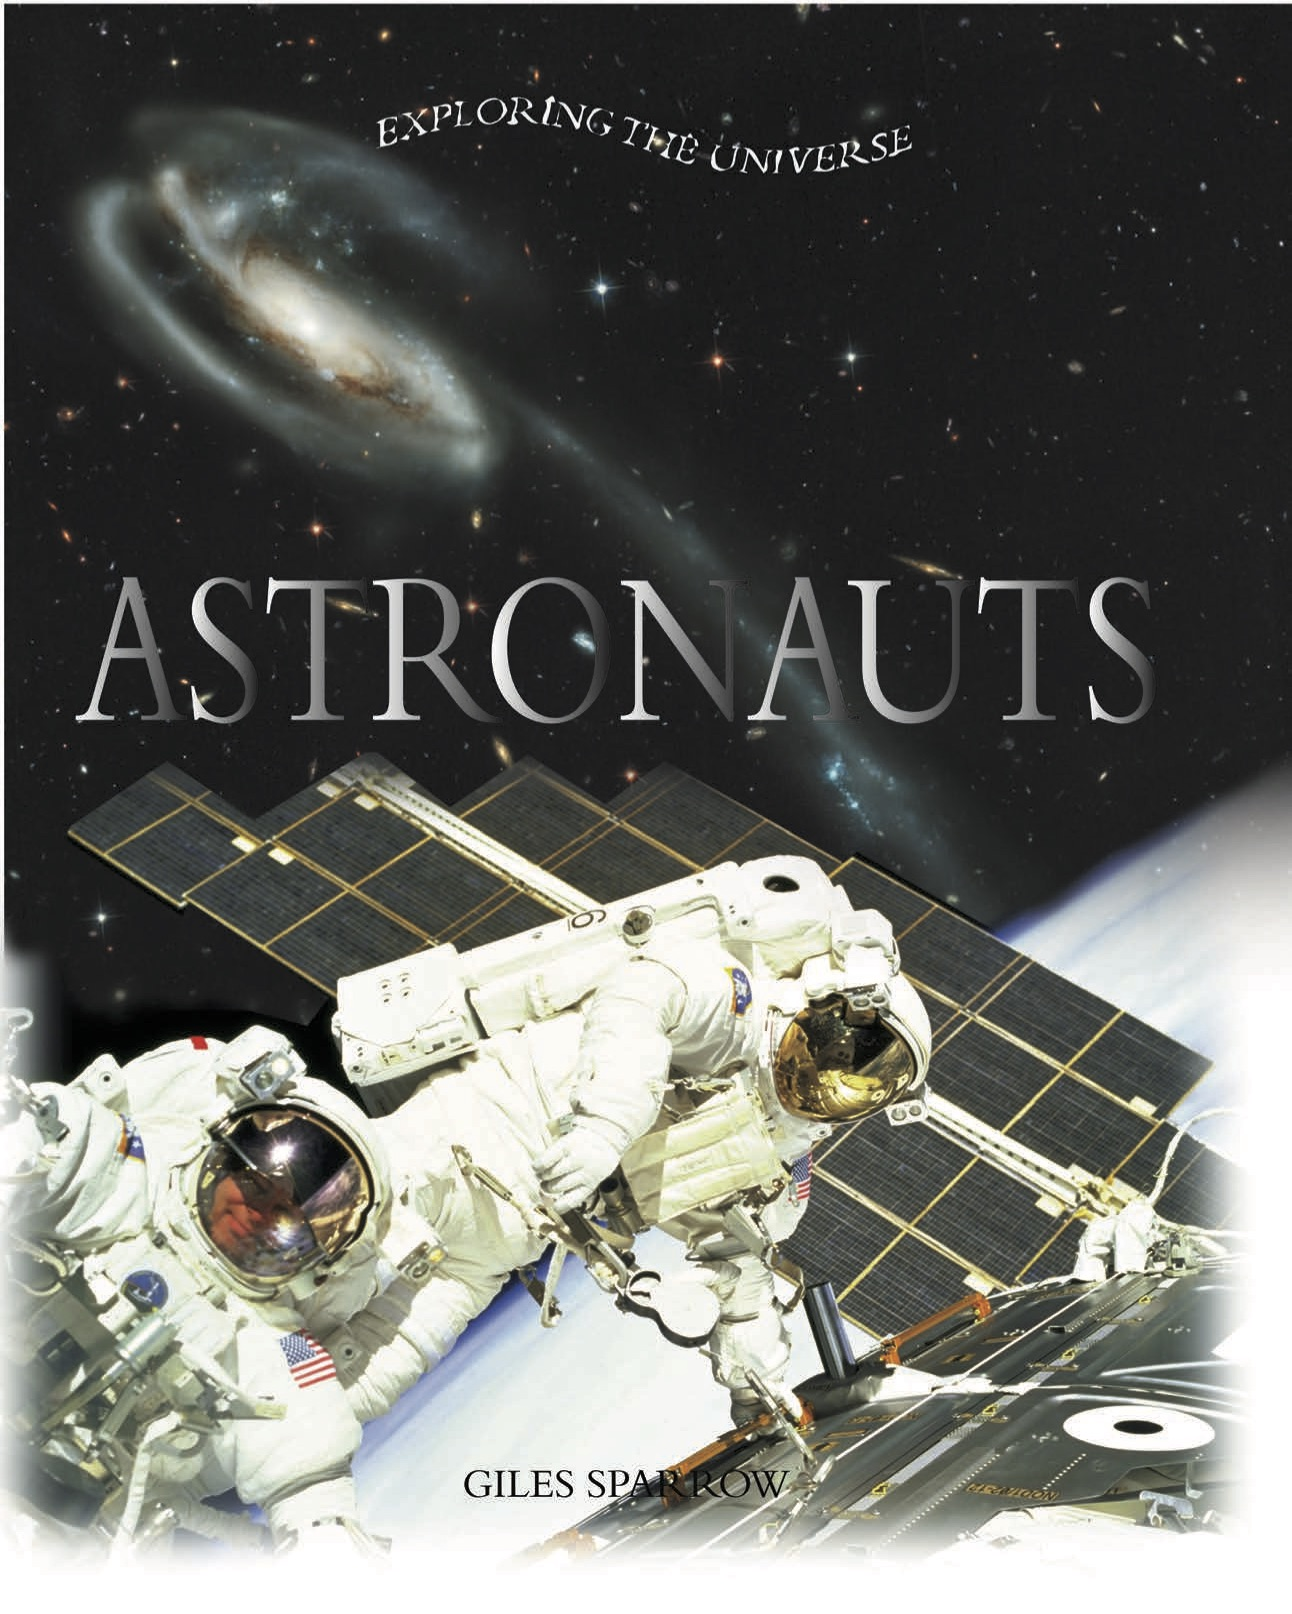 Exploring the Universe: Astronauts